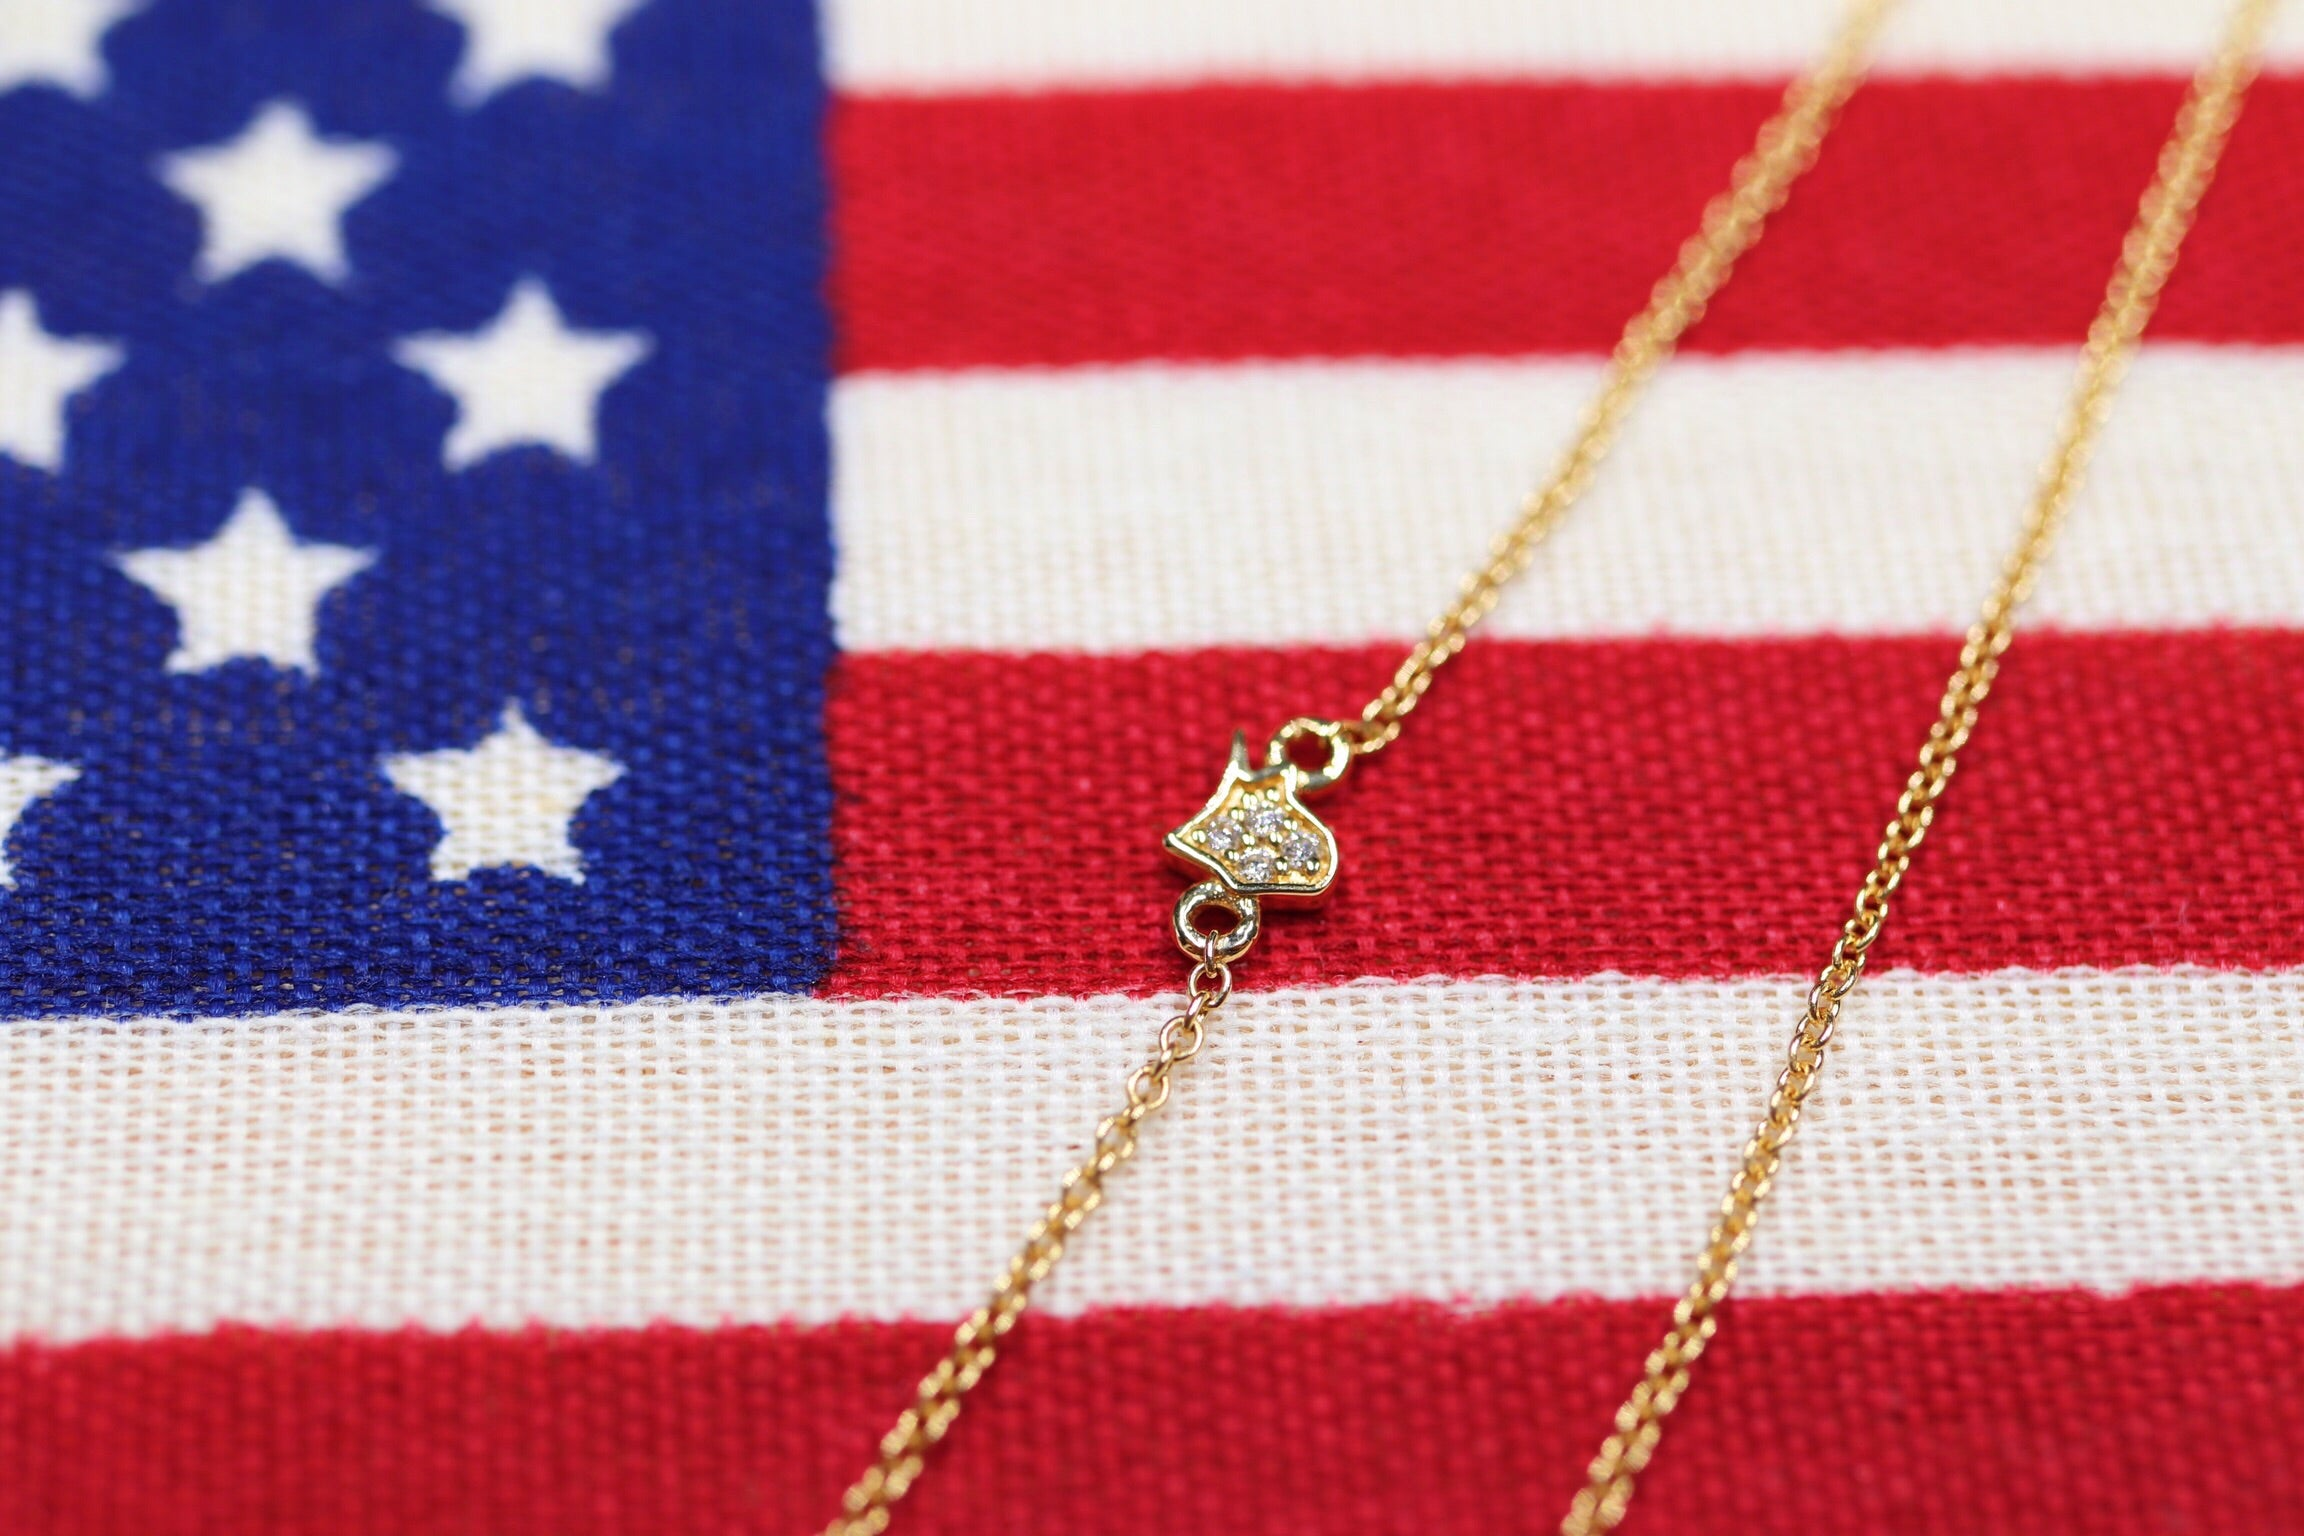 14K Yellow Gold With Diamond USA Necklace - Ice Motif